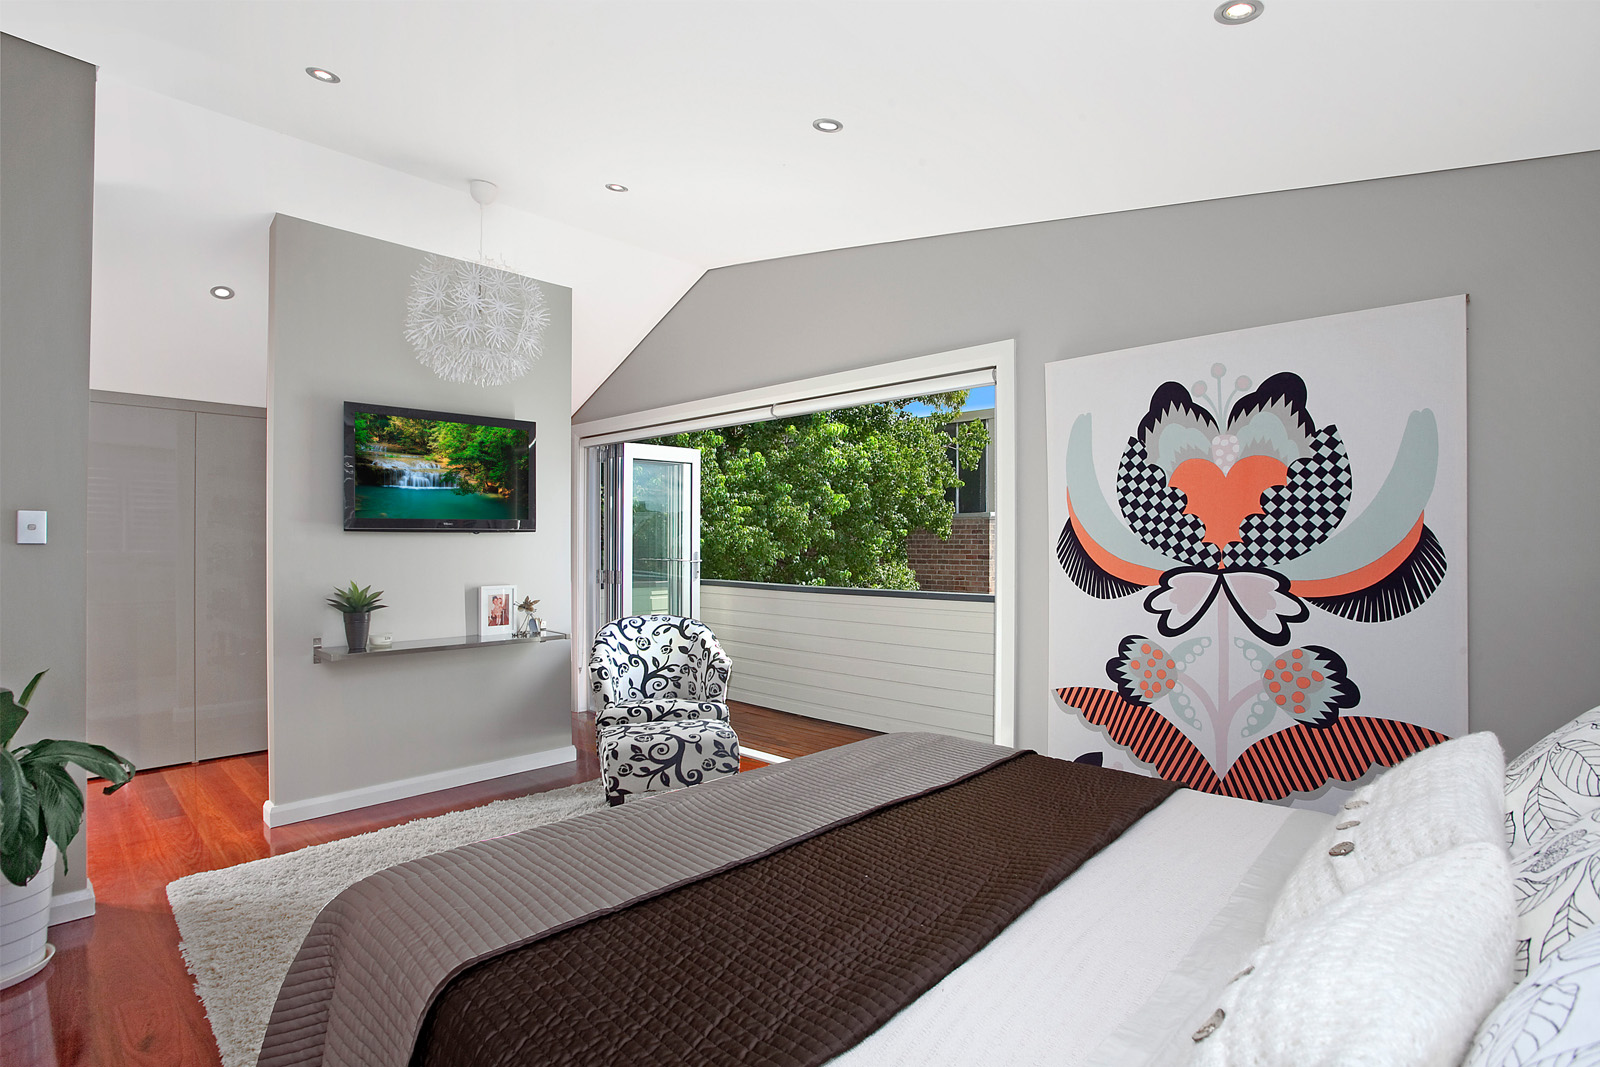 Cherie-Barber_Renovating-For-Profit_Small-Space_Mort-Street-Bedroom-After